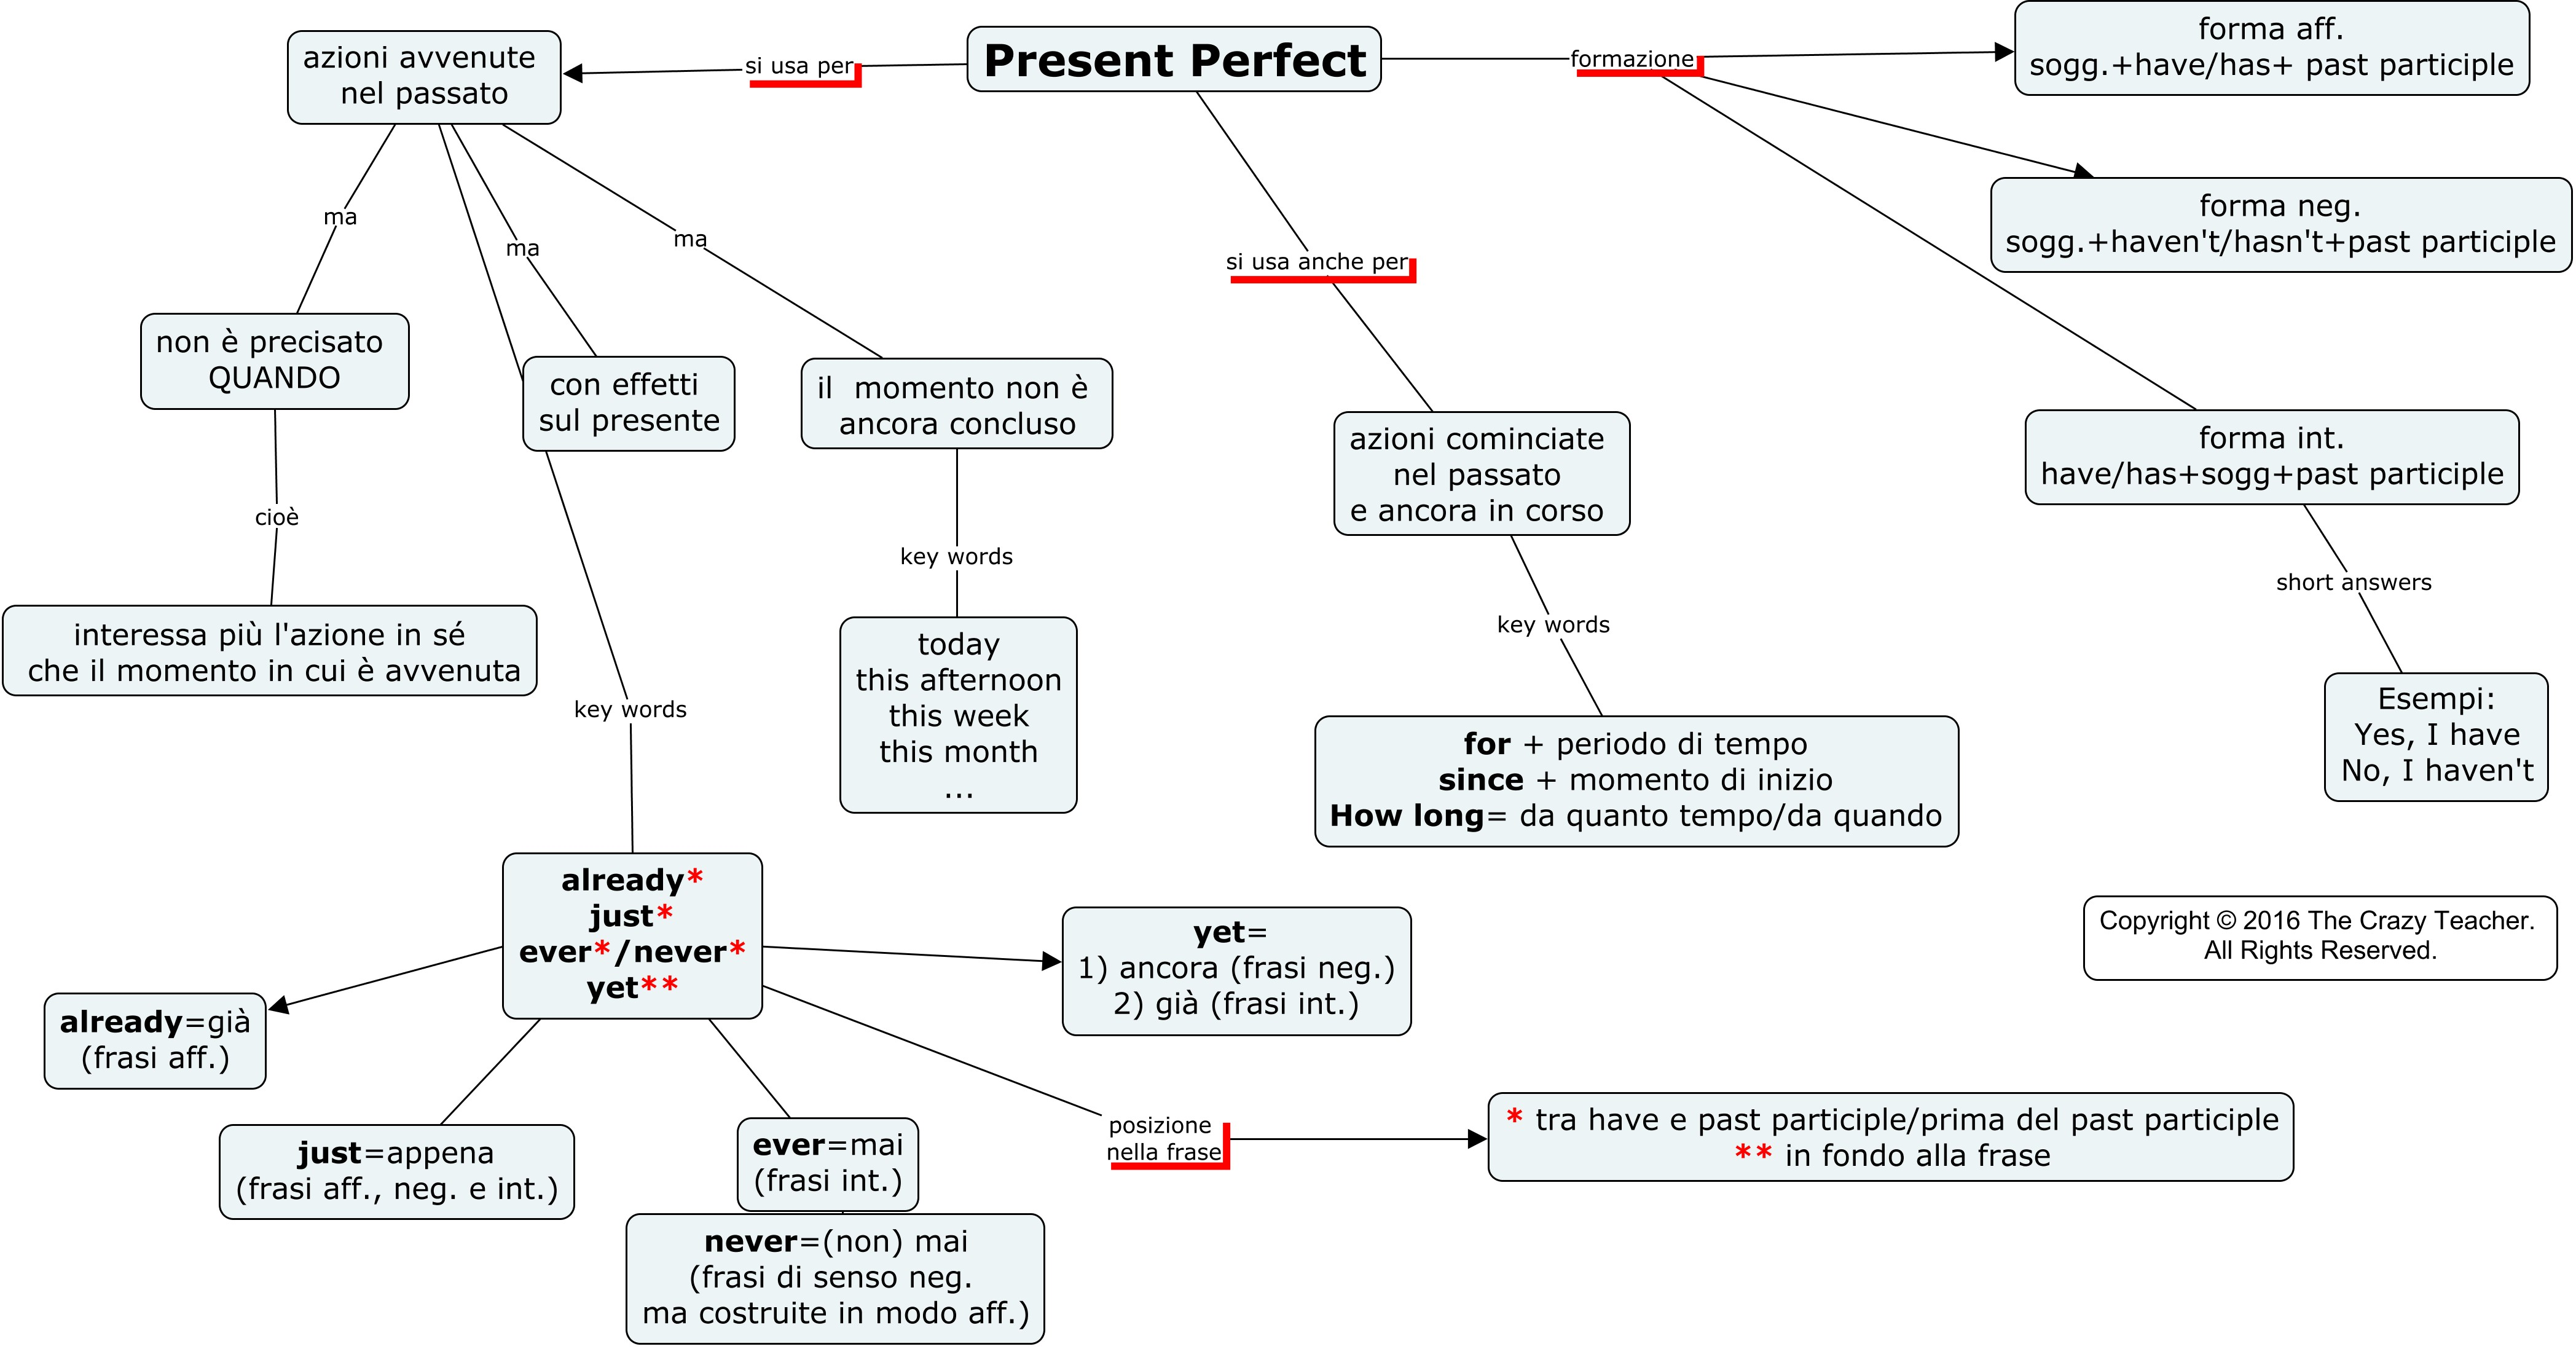 Present Perfect A Map In Italian The Crazy Teachers